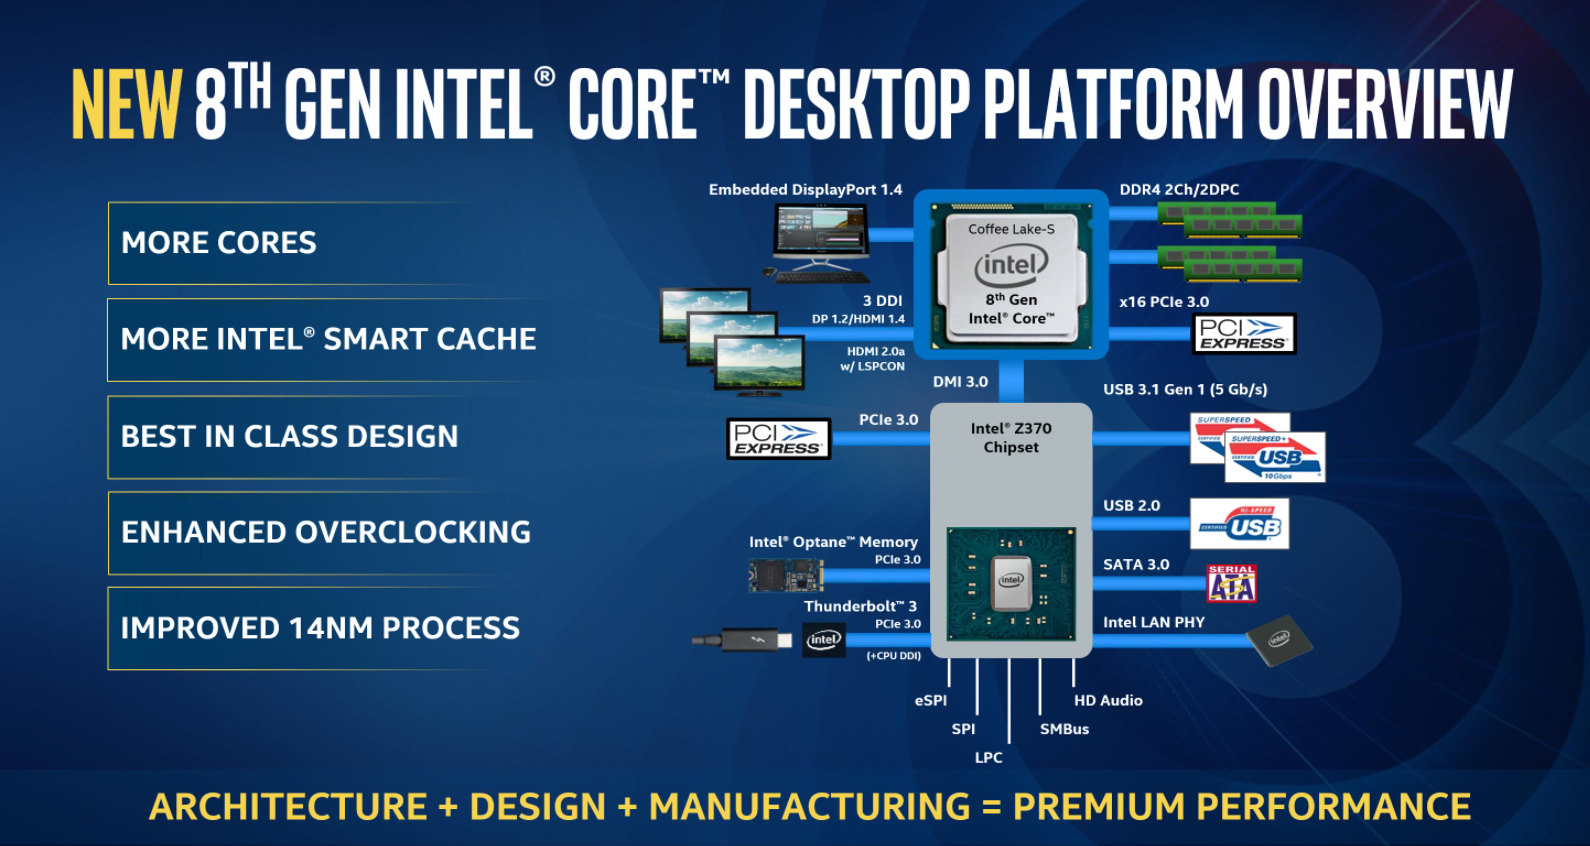 Intel's new 8th gen desktop processors available for purchase beginning October 5th